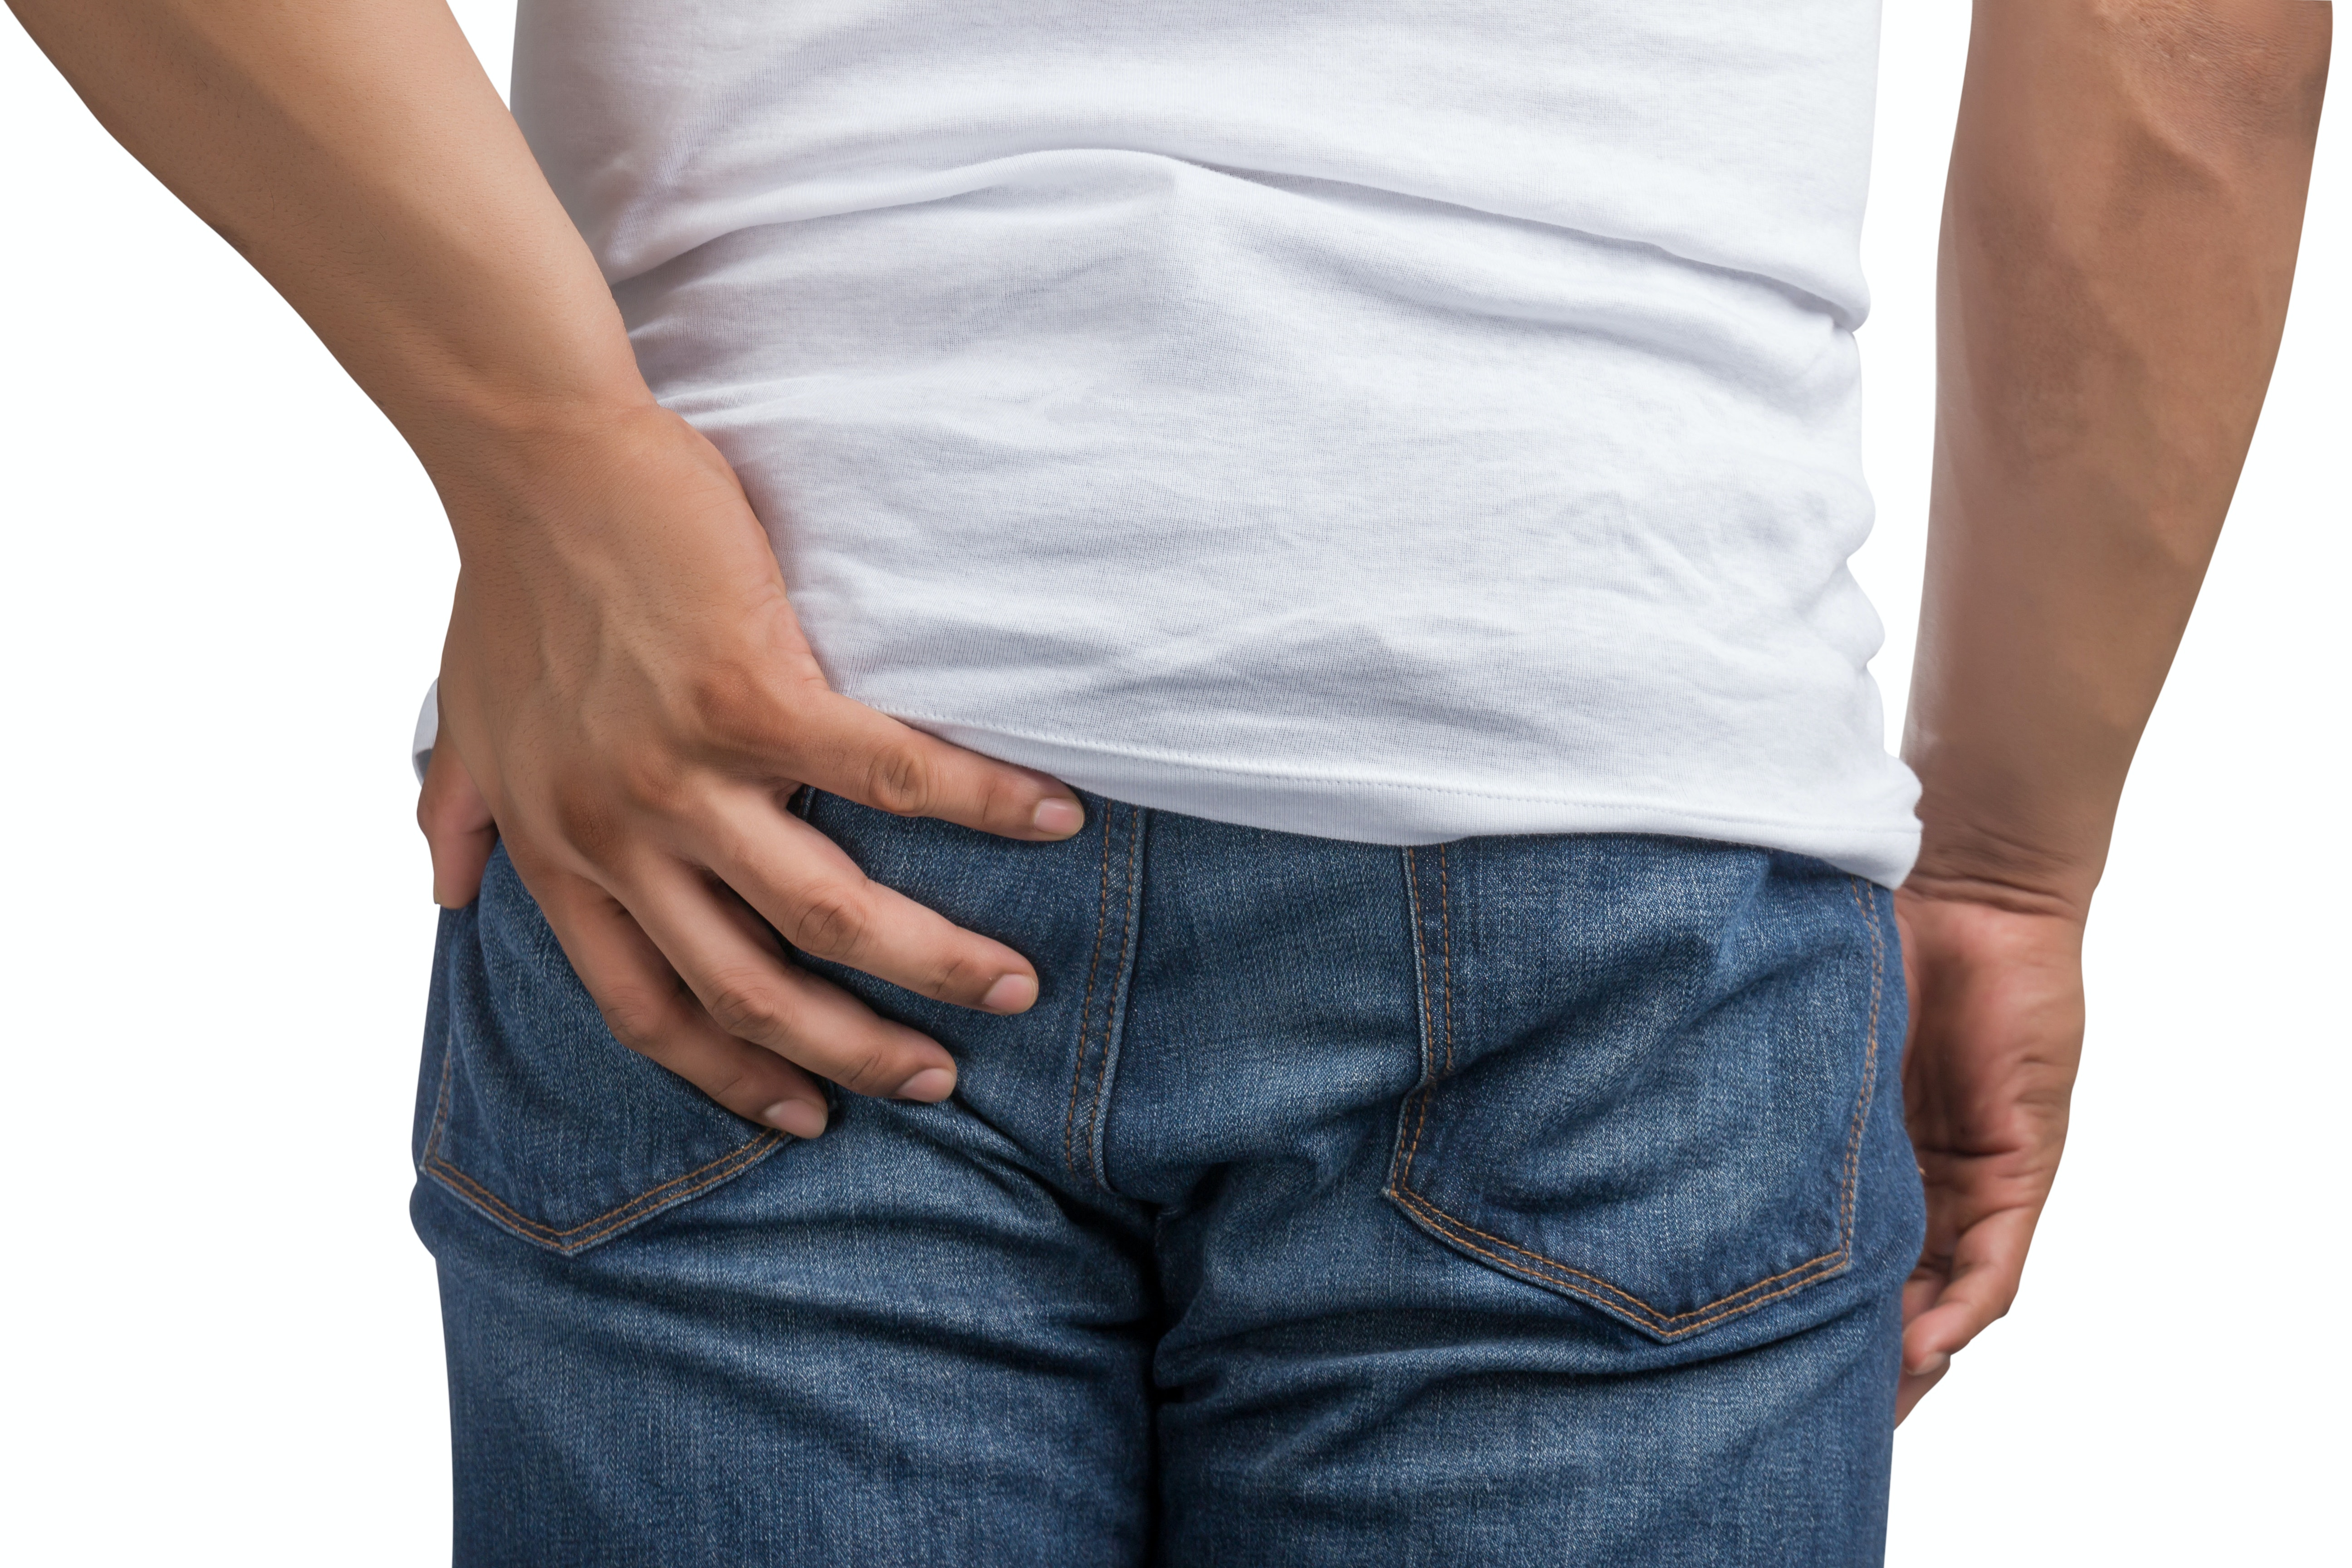 An image depicting a person suffering from rectal bleeding symptoms